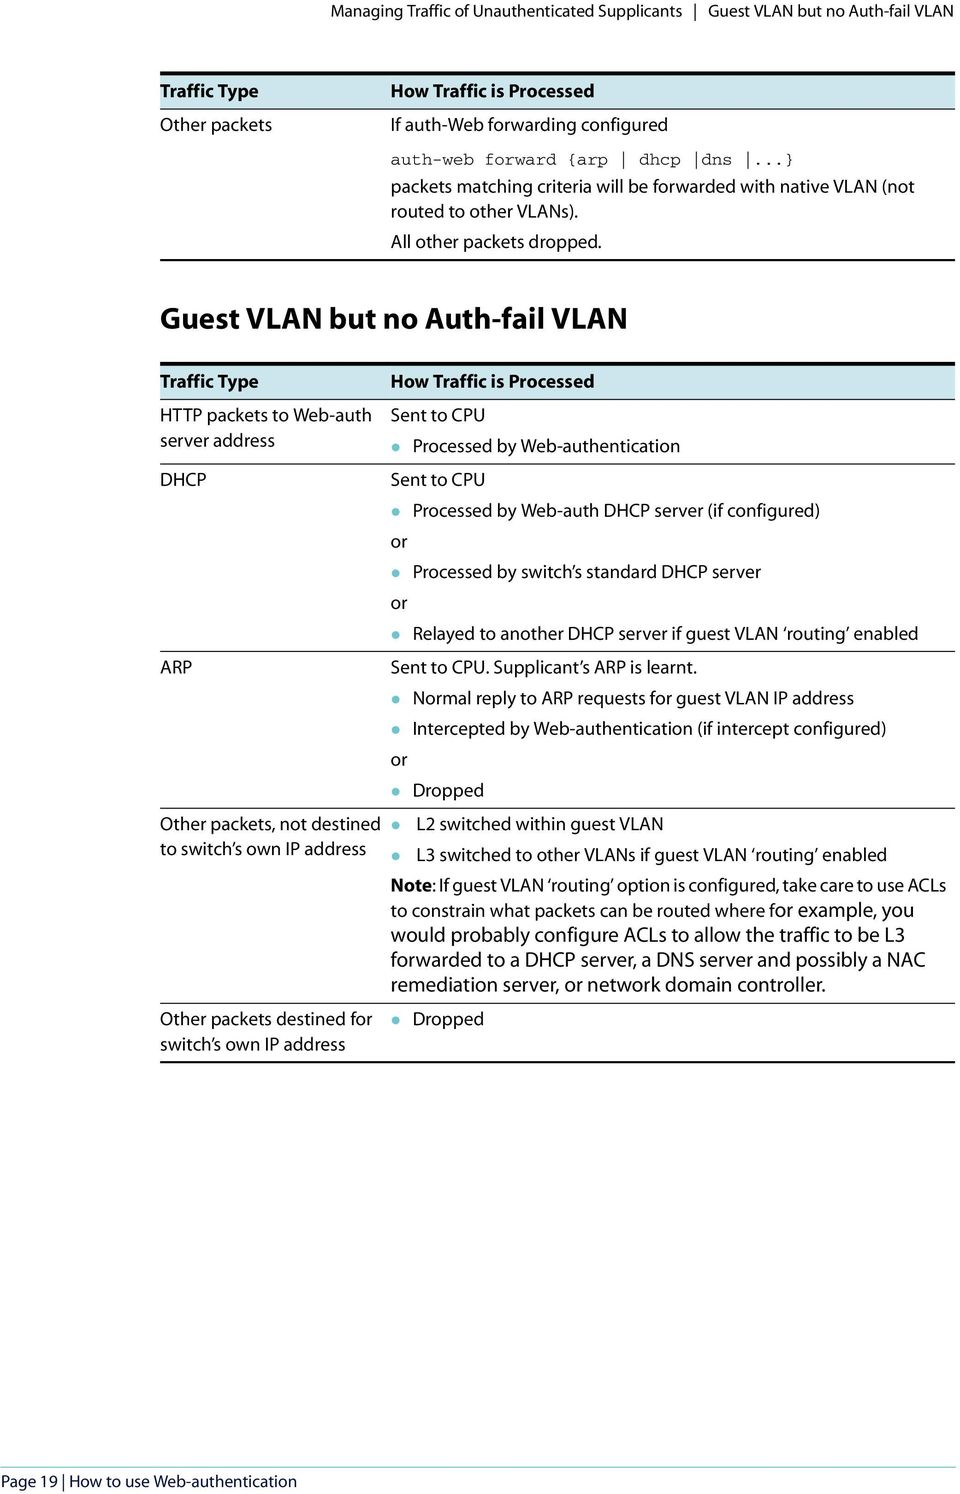 Guest VLAN but no Auth-fail VLAN Traffic Type HTTP packets to Web-auth server address DHCP ARP How Traffic is Processed Sent to CPU Processed by Web-authentication Sent to CPU Processed by Web-auth